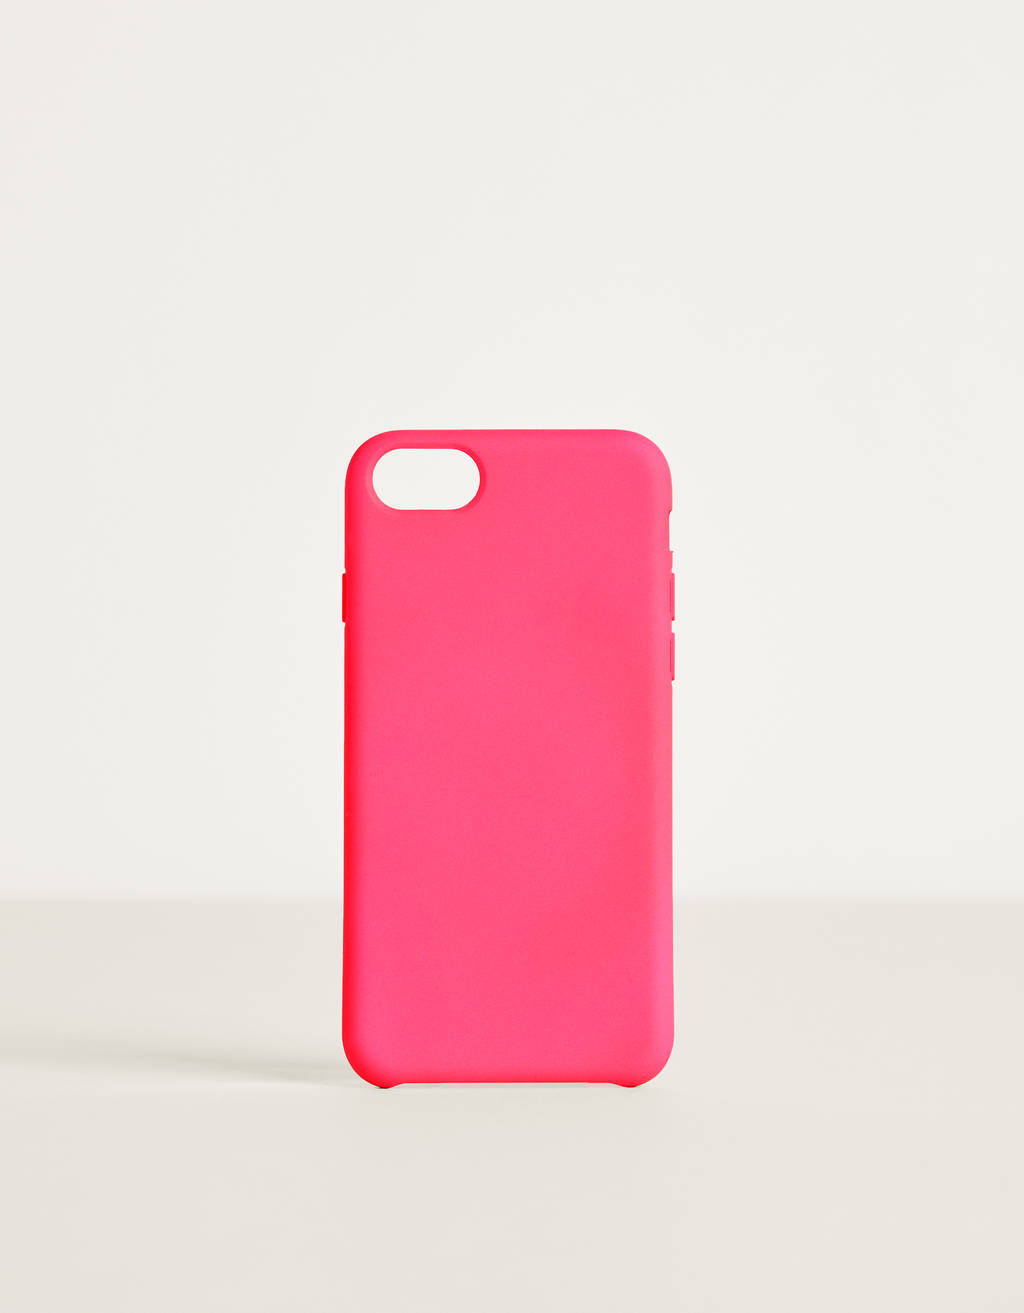 Carcasa monocolor iPhone 6 / 7 / 8